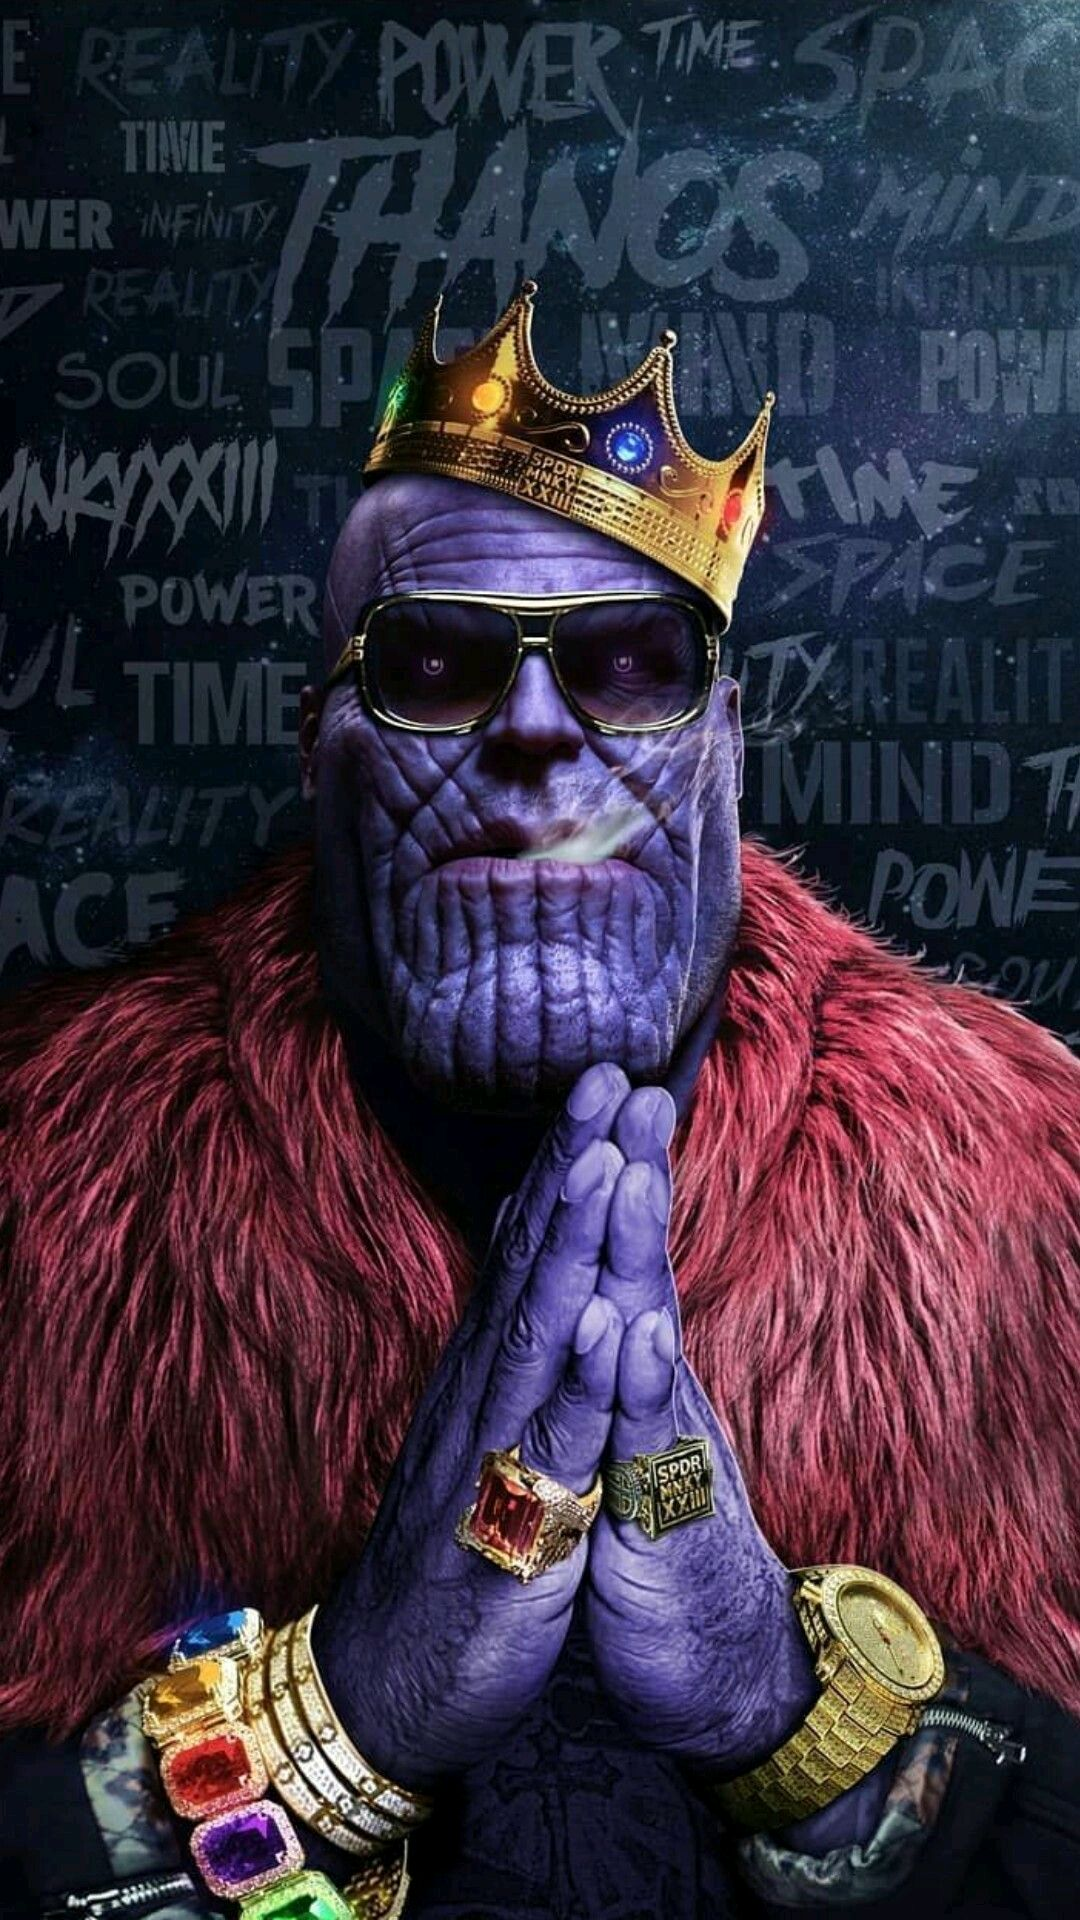 Iphone 5 Wallpaper Gold Avengers Thanos Hip Hop Crown Gold Chains Rings Infinity